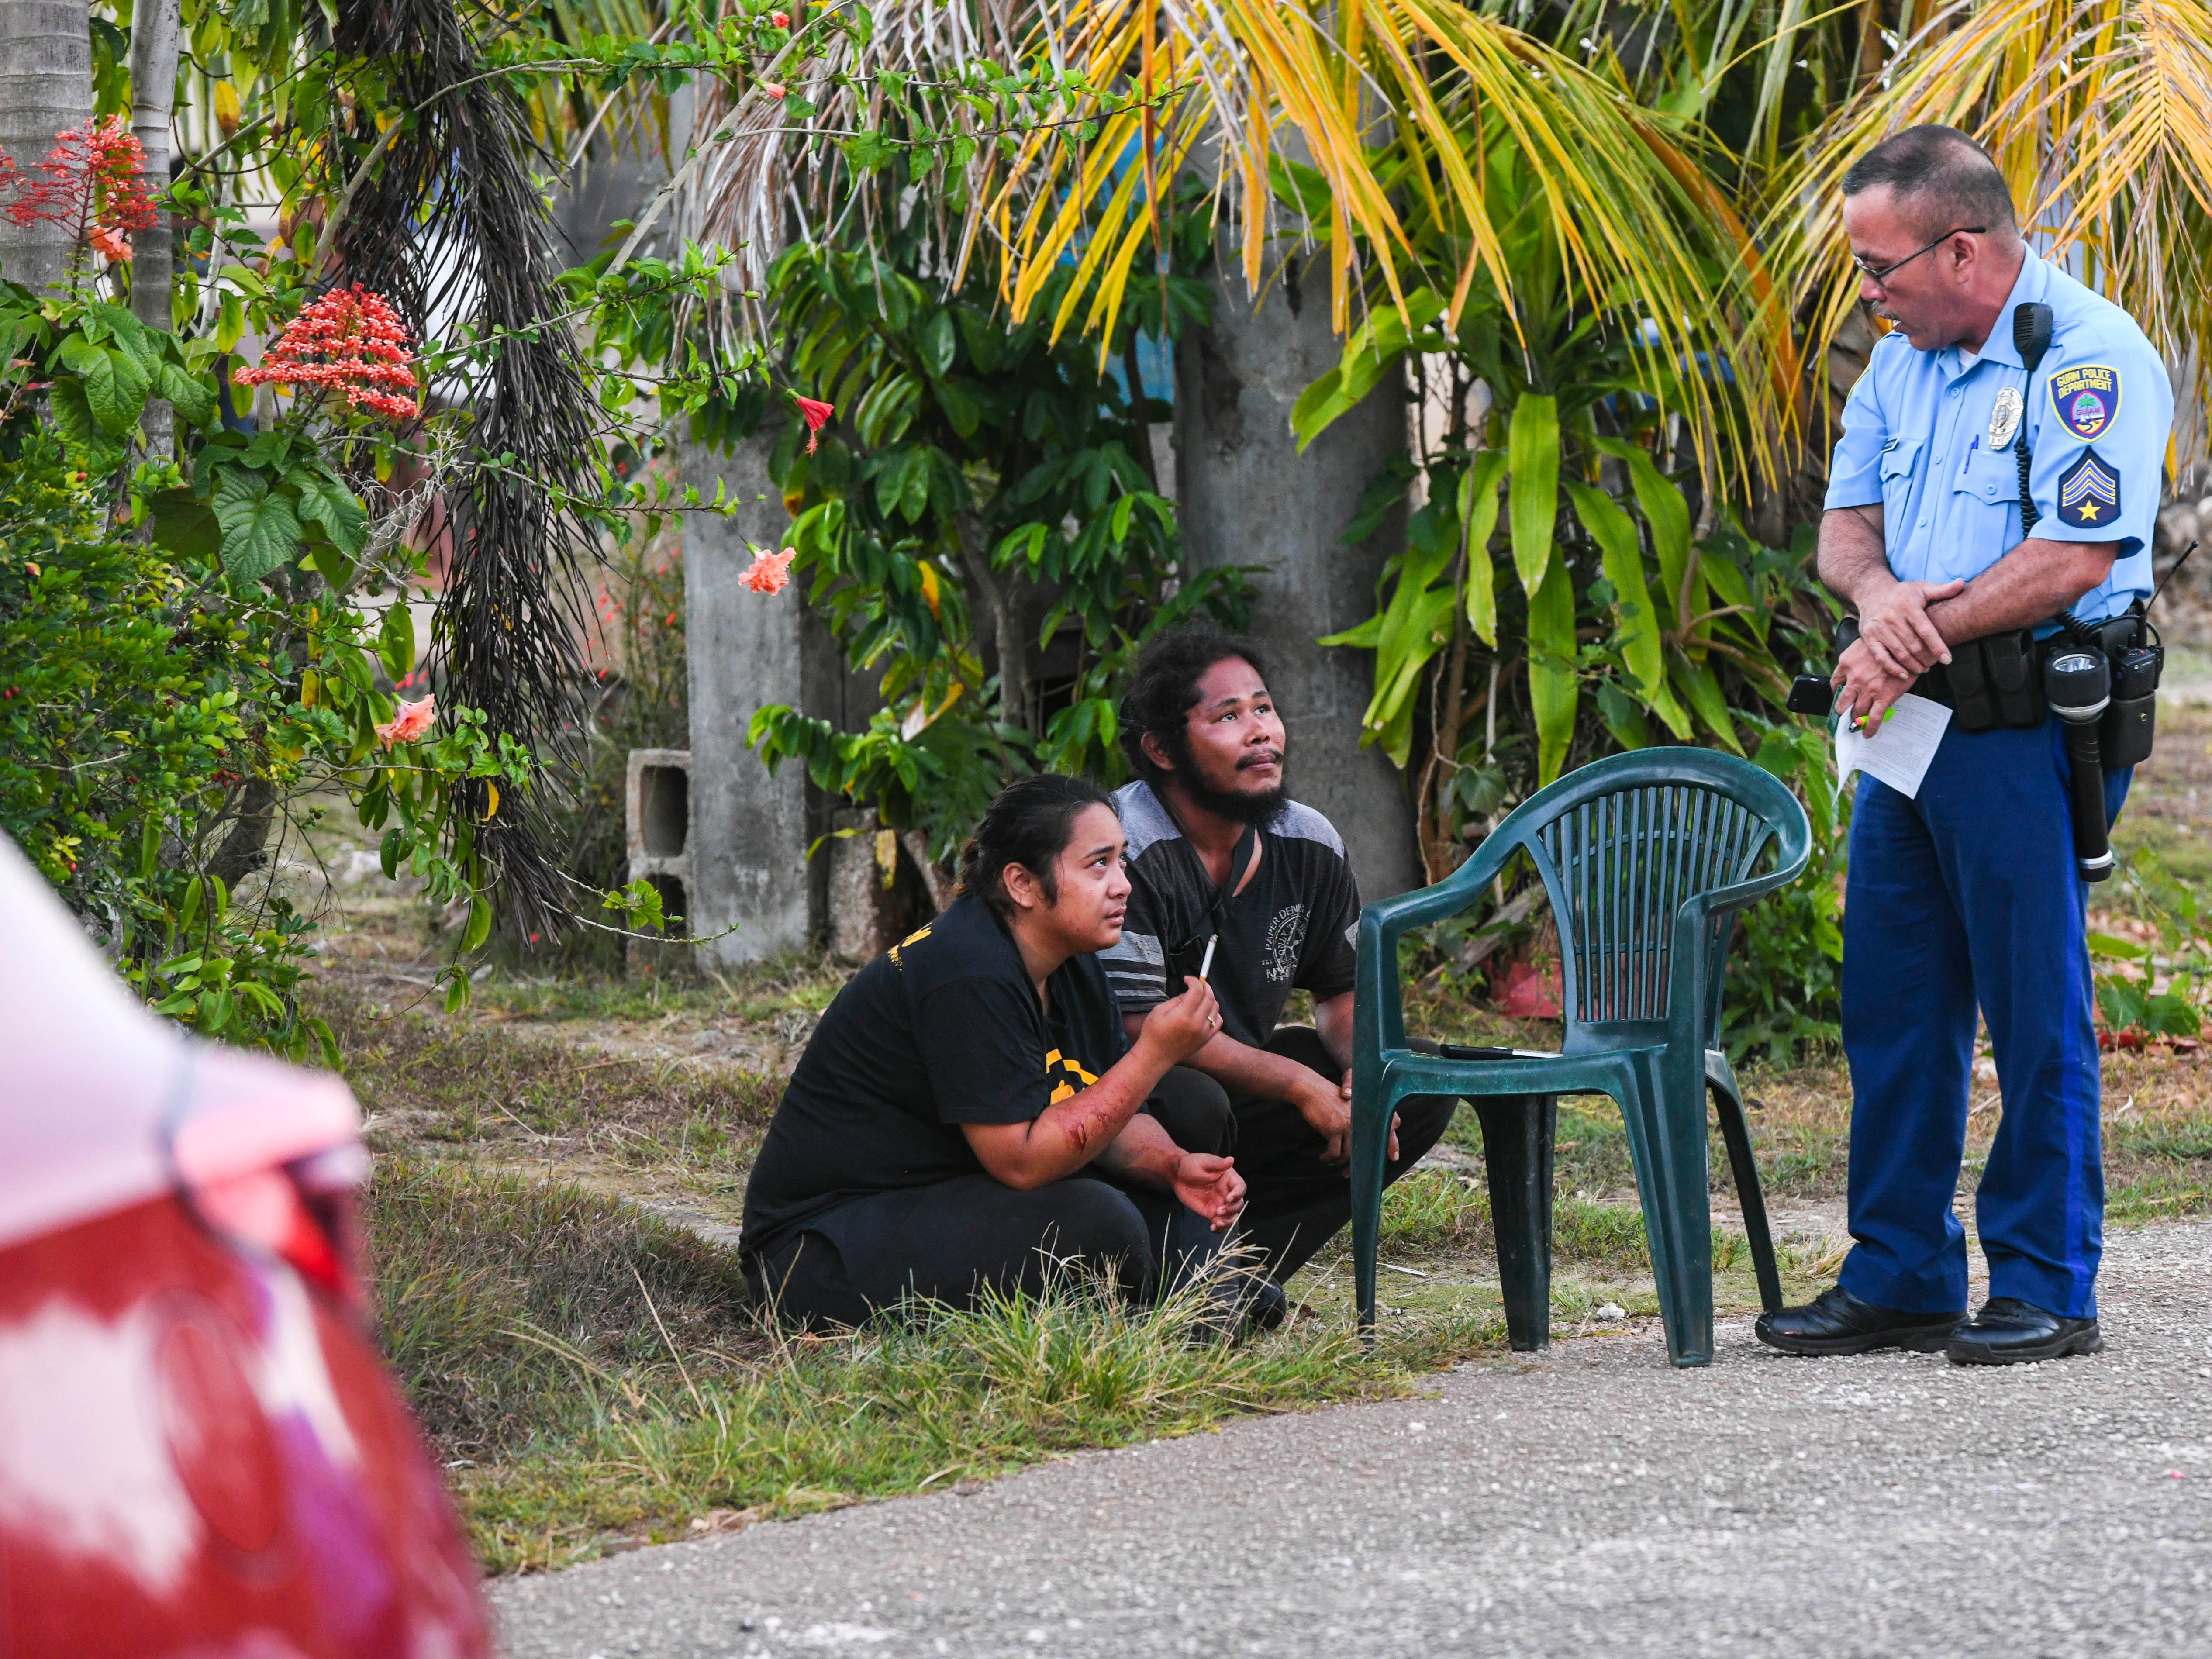 Guam Police Department Officer Jeb Santo Tomas speaks with Ewily Risa, seated left, and another individual, during a fatal auto-pedestrian incident in Dededo on the evening of Wednesday, May 7, 2019. Four-year-old Jericho Zion David, died after being struck in front of his family's home, by a Red Toyota Corolla driven by Risa,